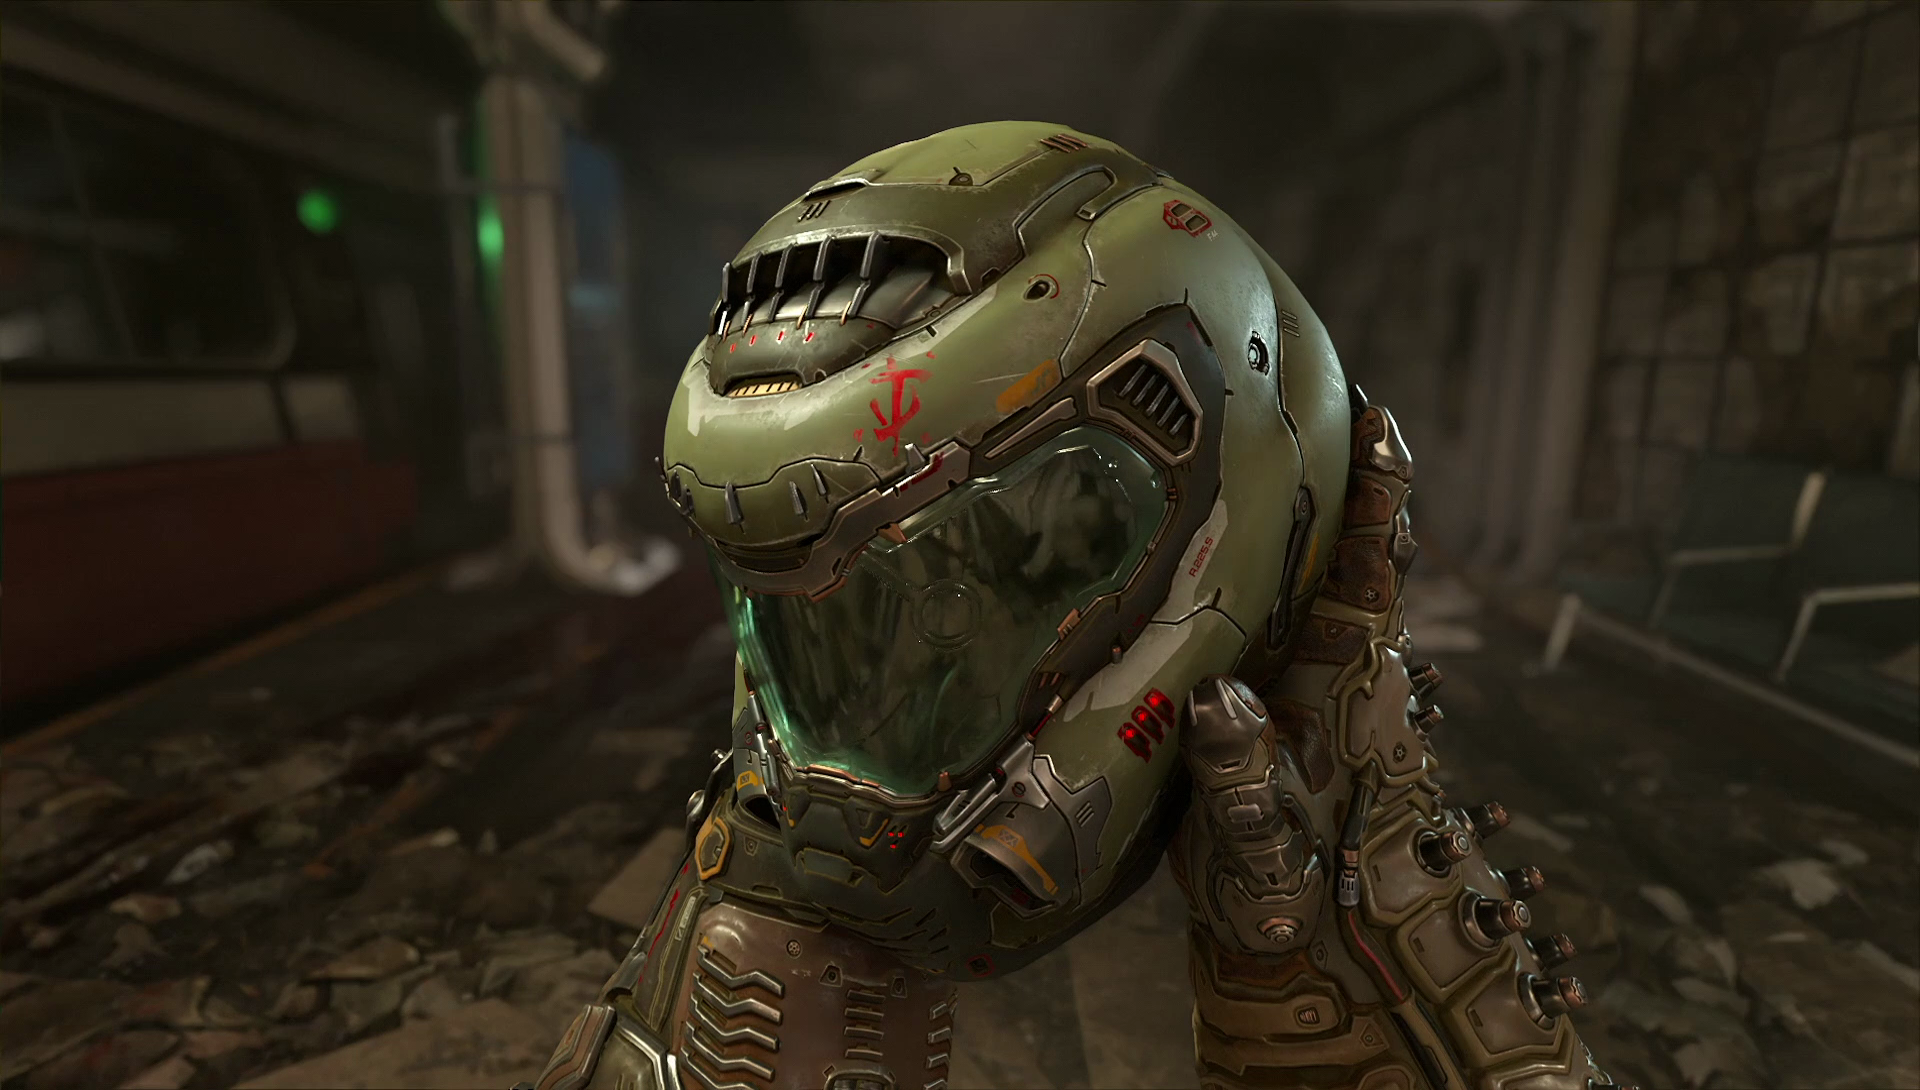 Doom Eternal Slayer Helmet Hd Wallpaper Background Image 1920x1090 Id 940775 Wallpaper Abyss